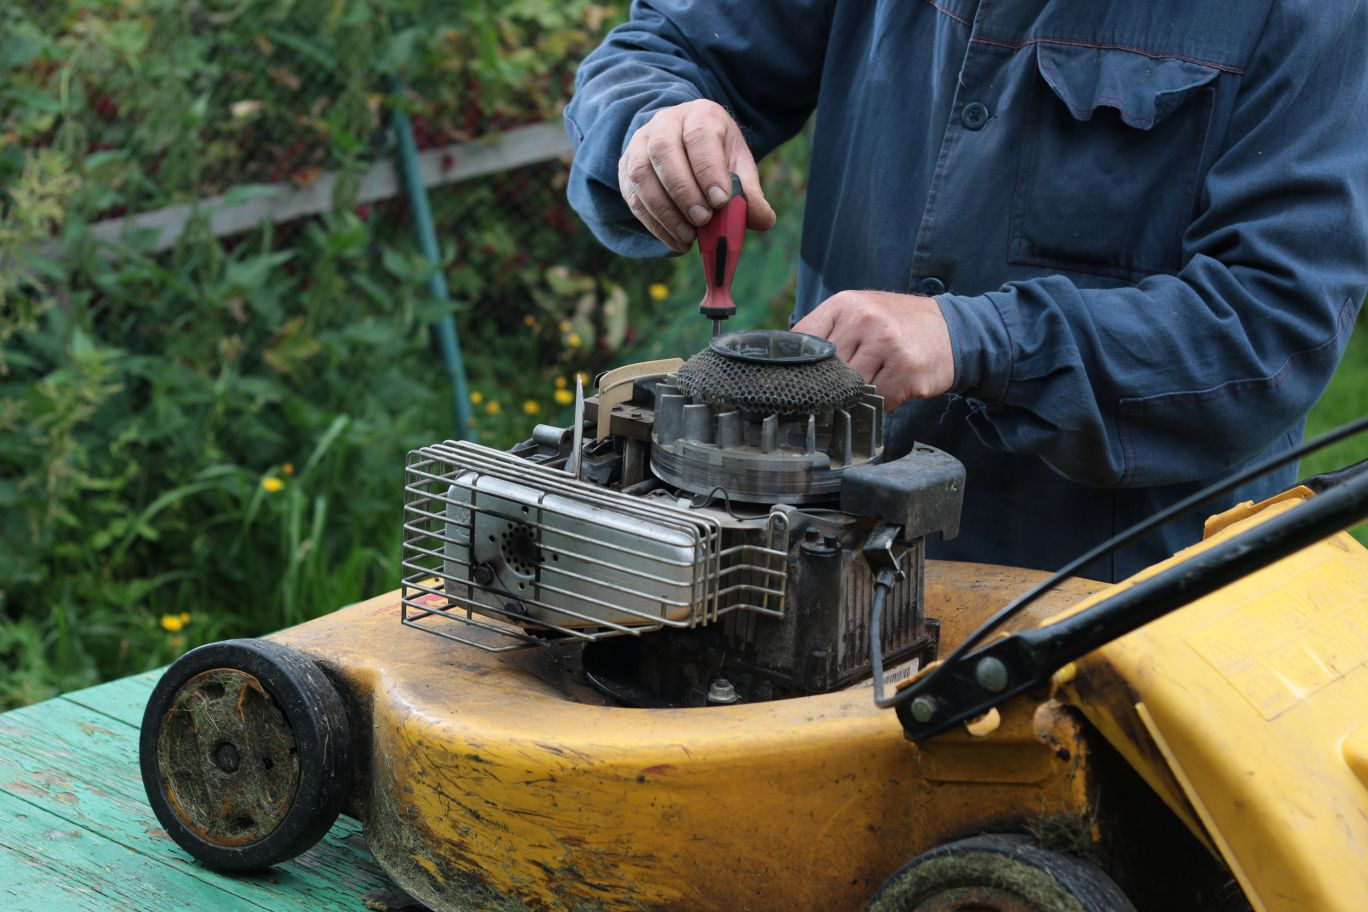 Lawn Mowers - Sharpen & Repair